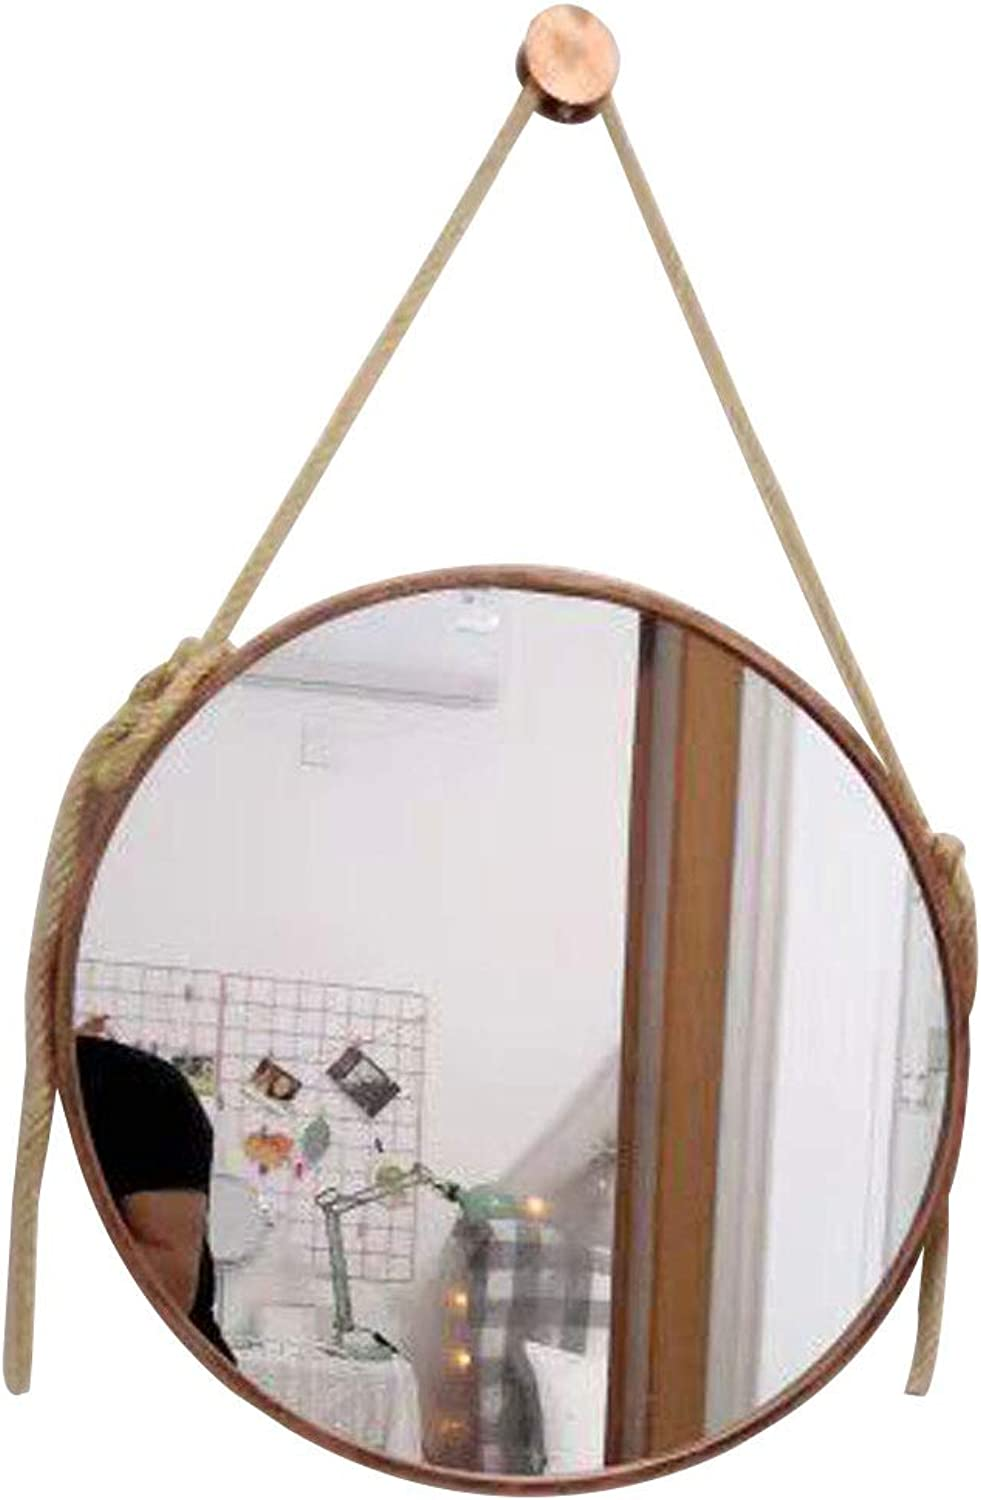 Round Wall Mirror Decorative Mirror Antique Metal Frame Wall Hanging Mirror Ldeal for Bathroom Living Room Hallway - Copper -Diameter 11.8-31.5 Inch